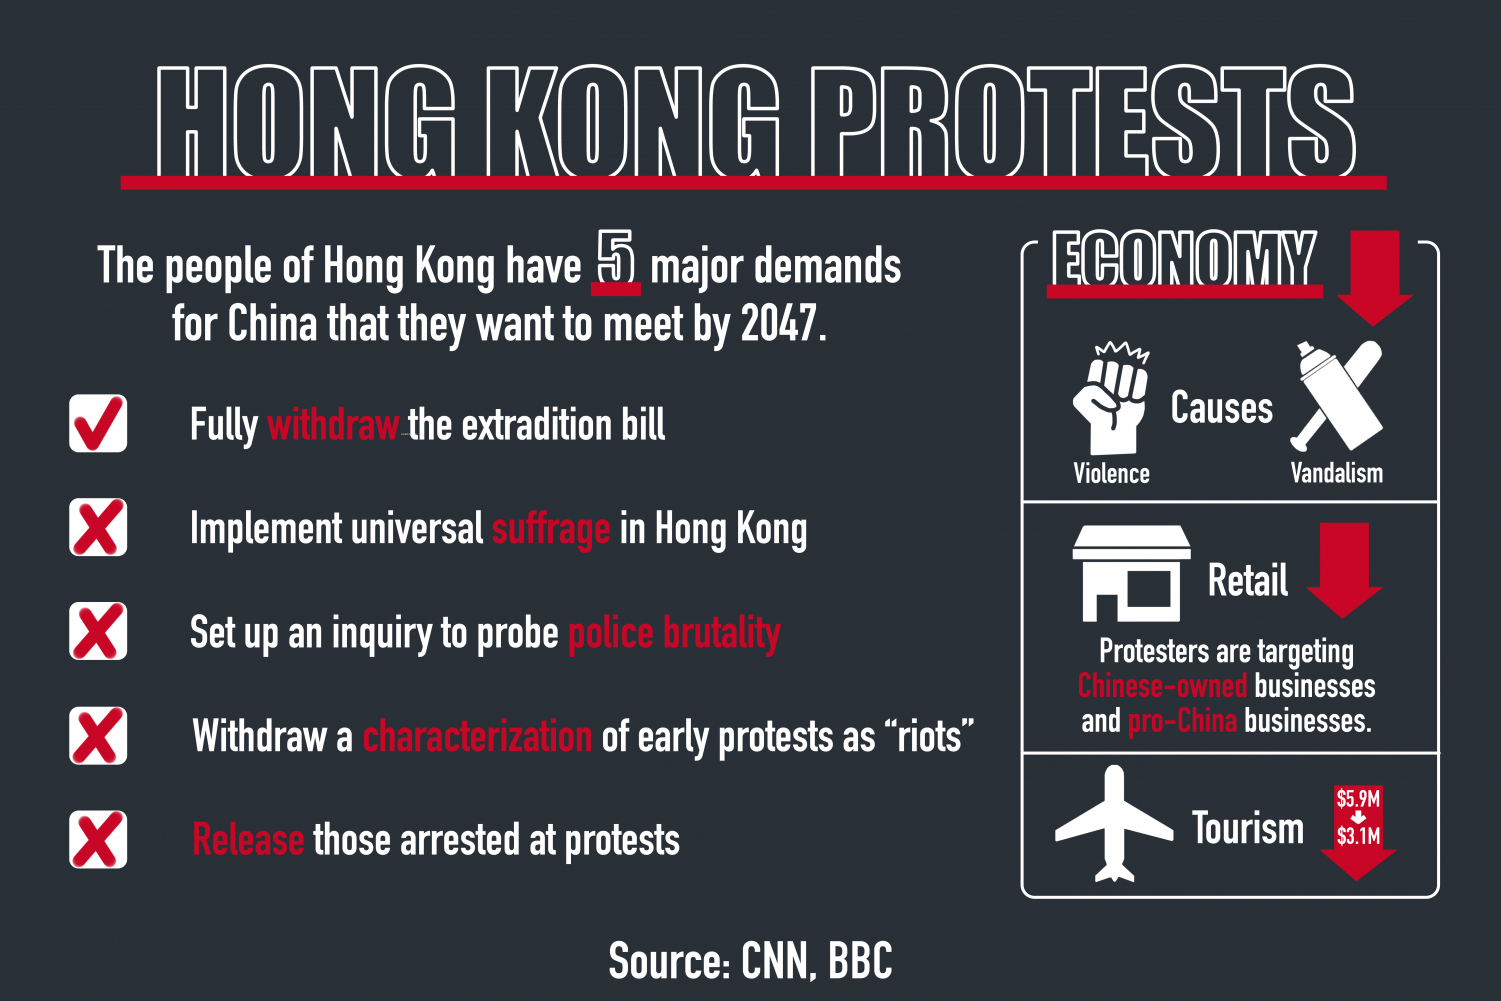 Protests against the Chinese government are currently in action in Hong Kong. They initially began as a result of the extradition bill which has since been withdrawn. Violence as a result of the protests led to a decline in the economy of Hong Kong.